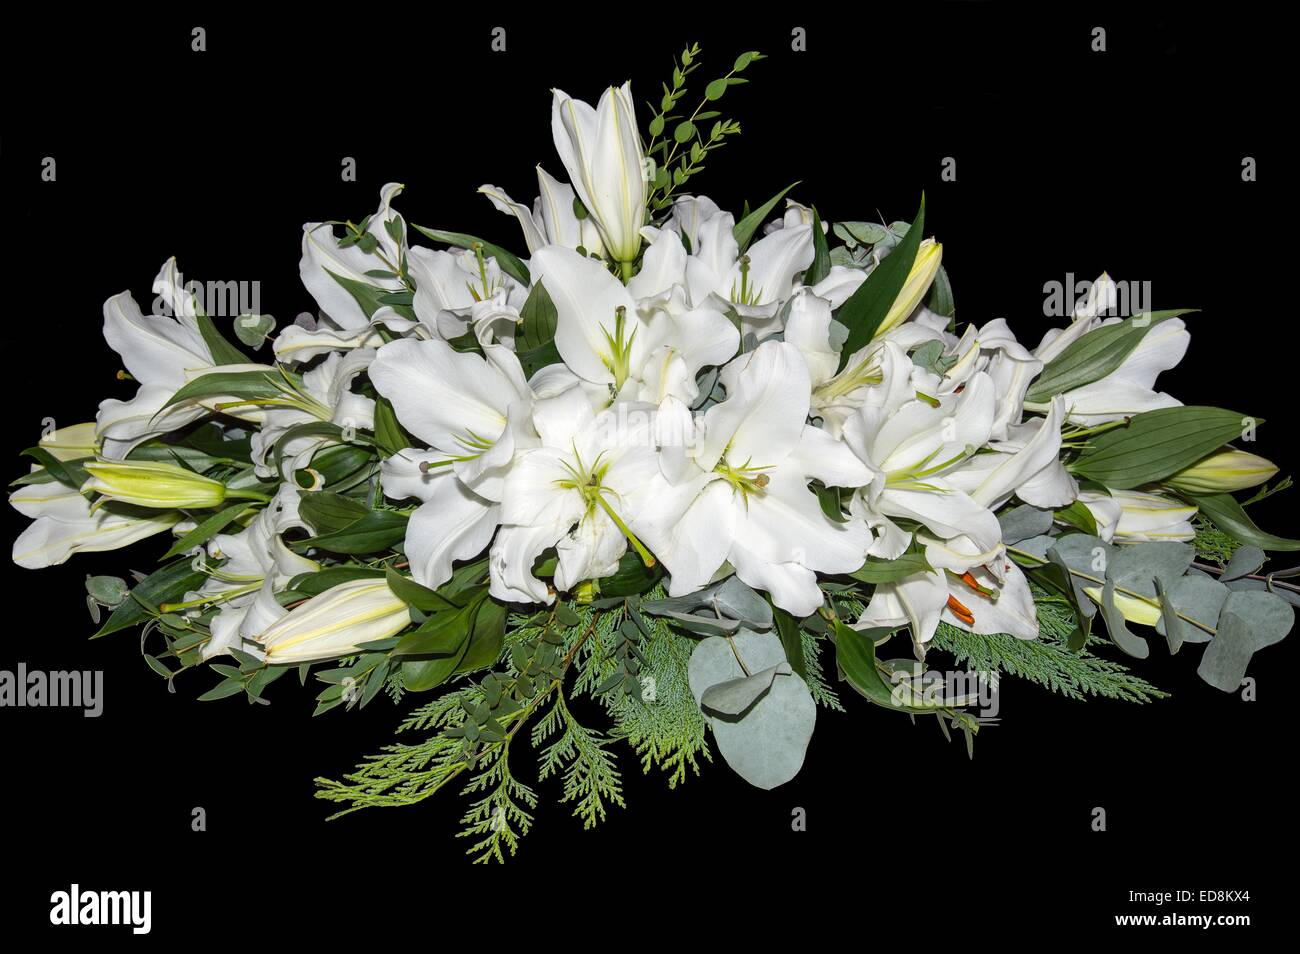 Black lilies stock photos black lilies stock images alamy a spray of white lilies isolated on a black background stock image izmirmasajfo